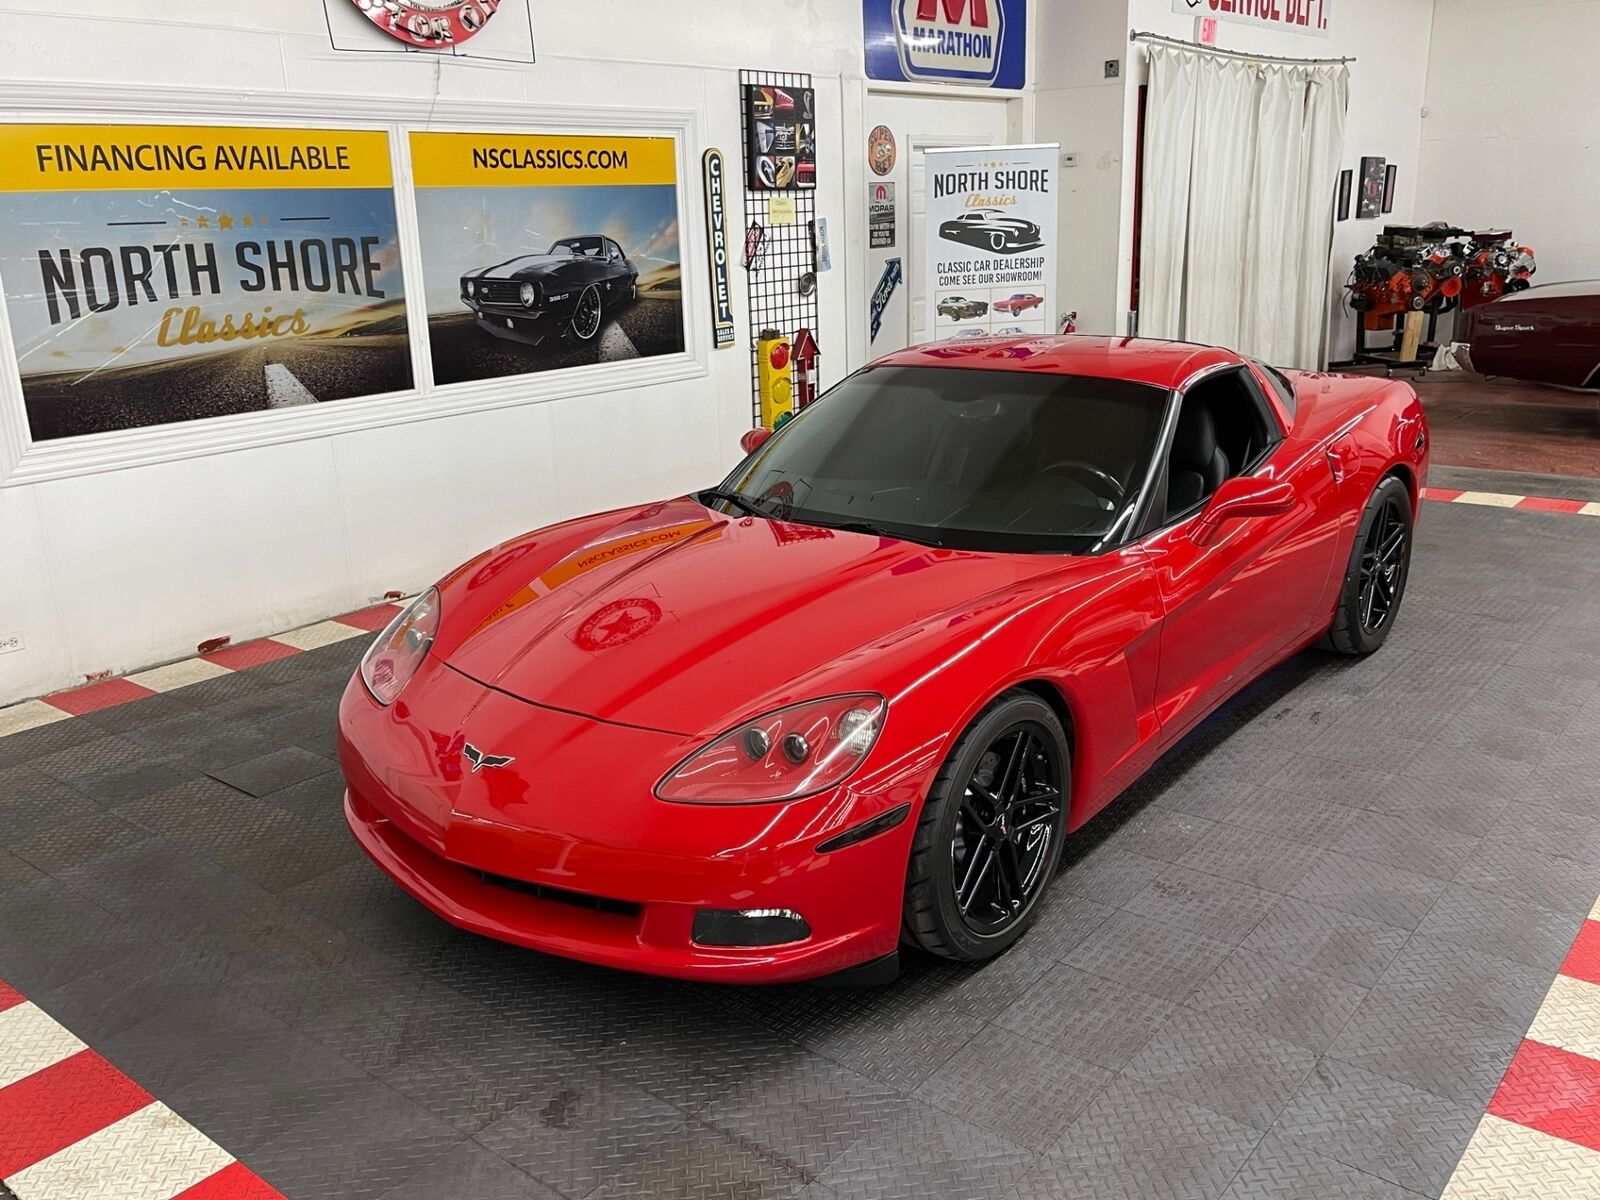 2007 Red Chevrolet Corvette   | C6 Corvette Photo 1